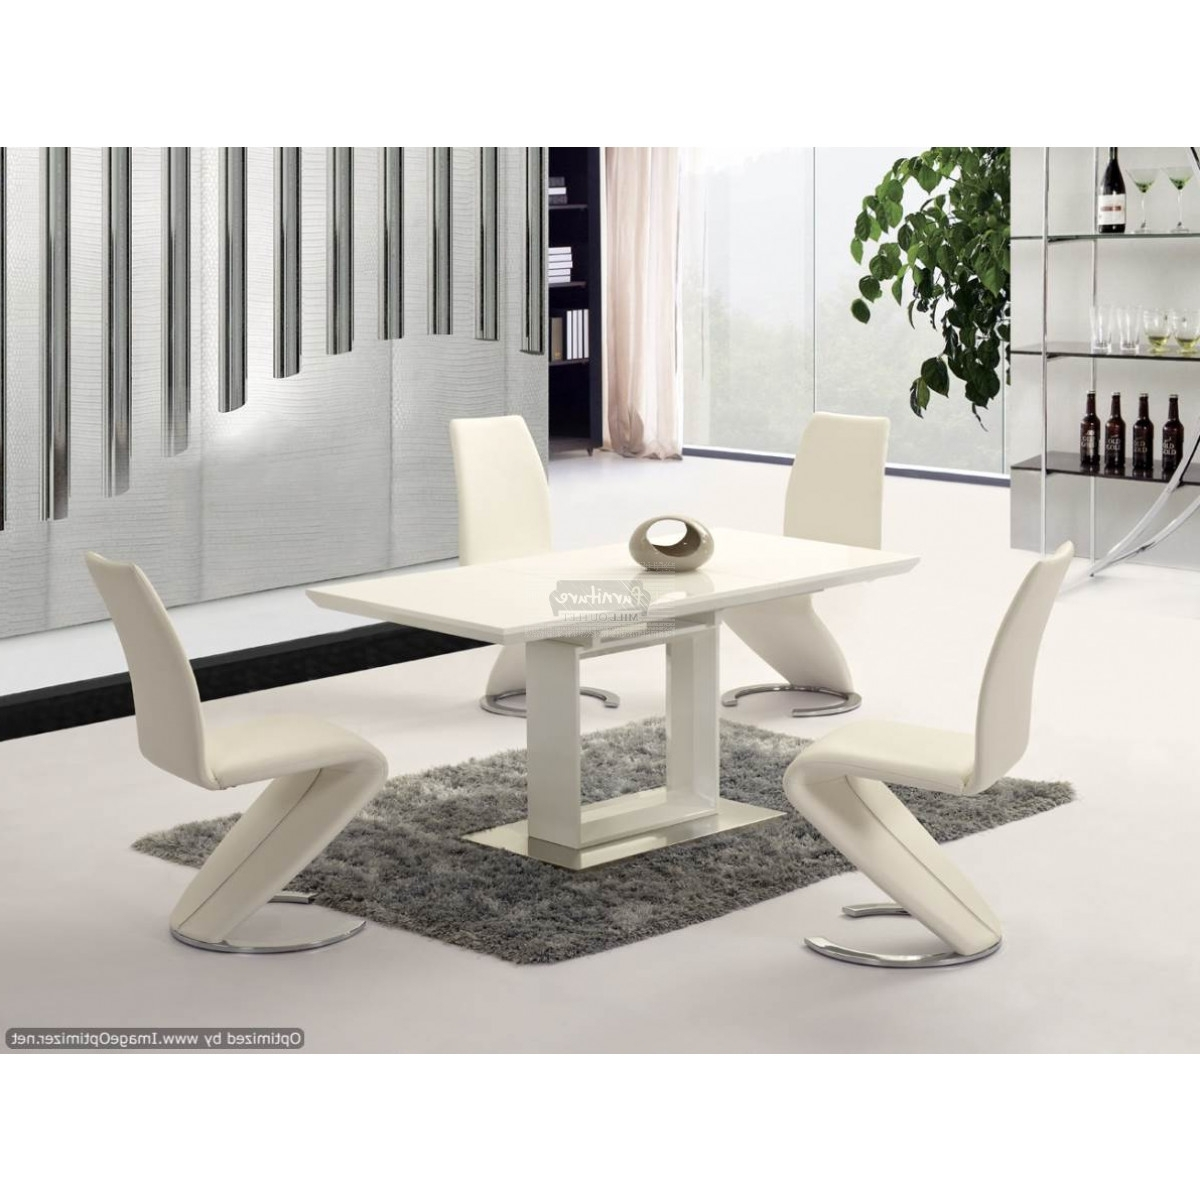 Fashionable Extending White Gloss Dining Tables With Space White High Gloss Extending Dining Table – 120Cm To 160Cm (View 8 of 25)